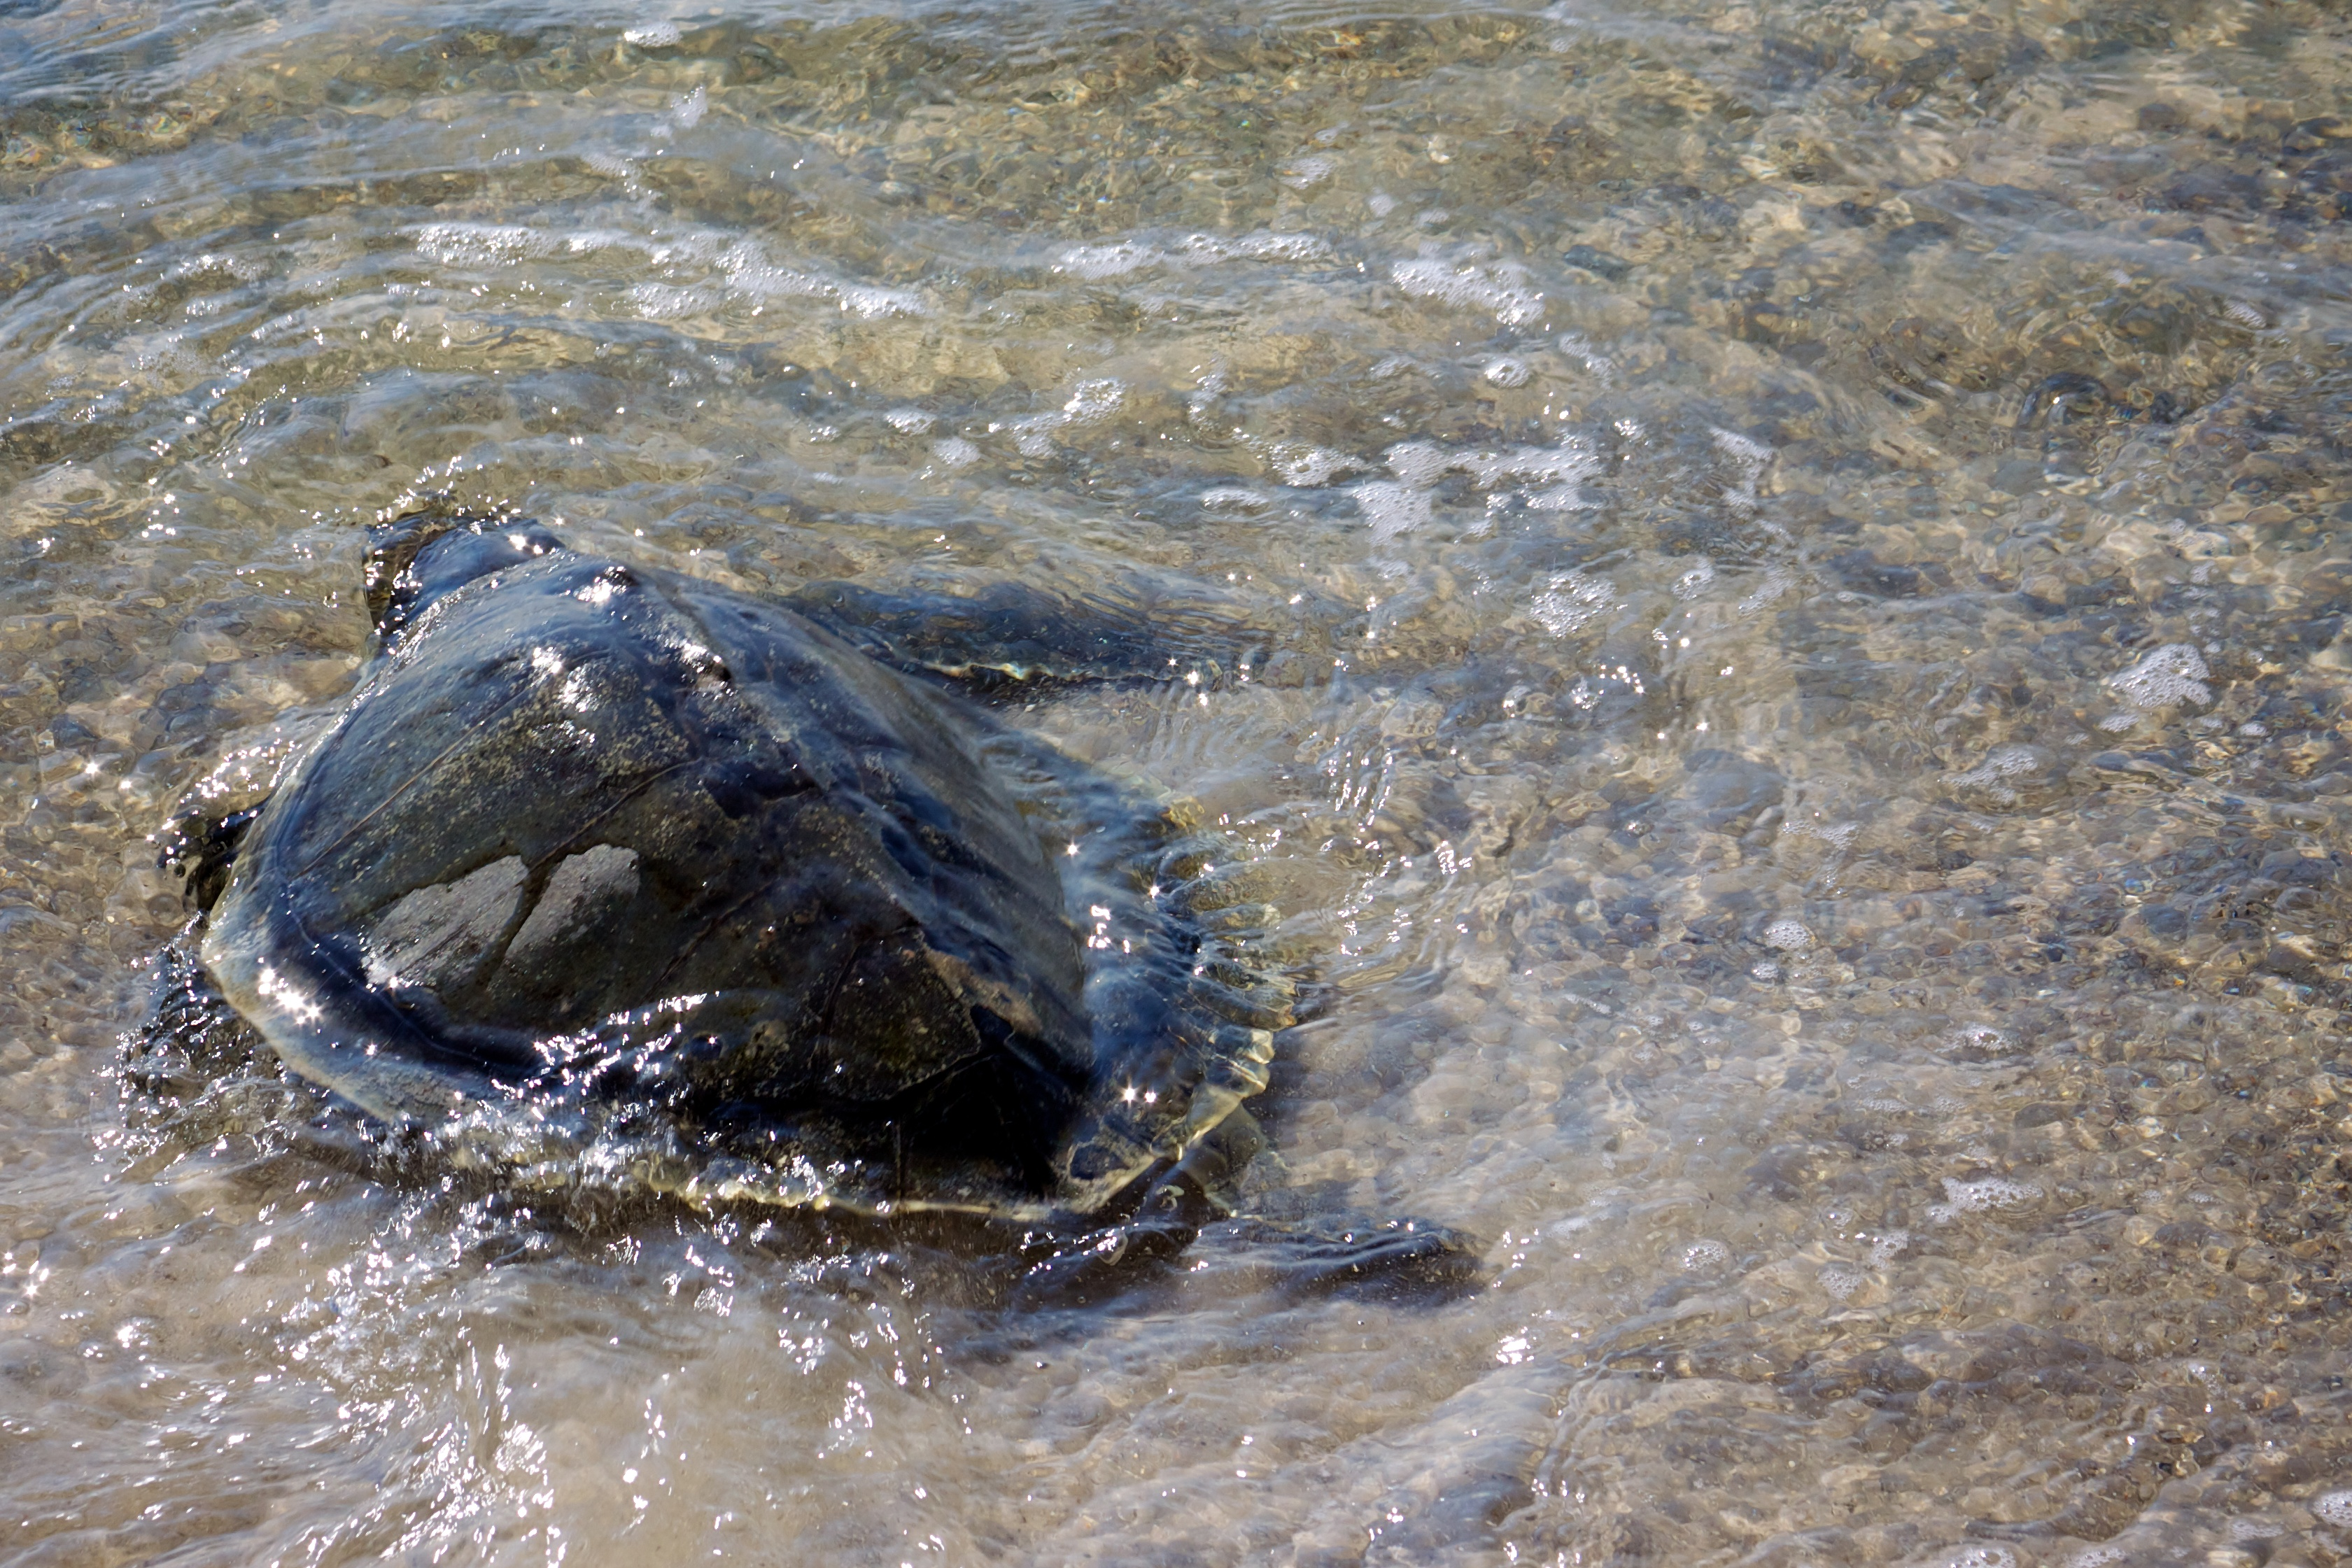 Kemp's Ridley Sea Turtle being released at Bon Secour NWR